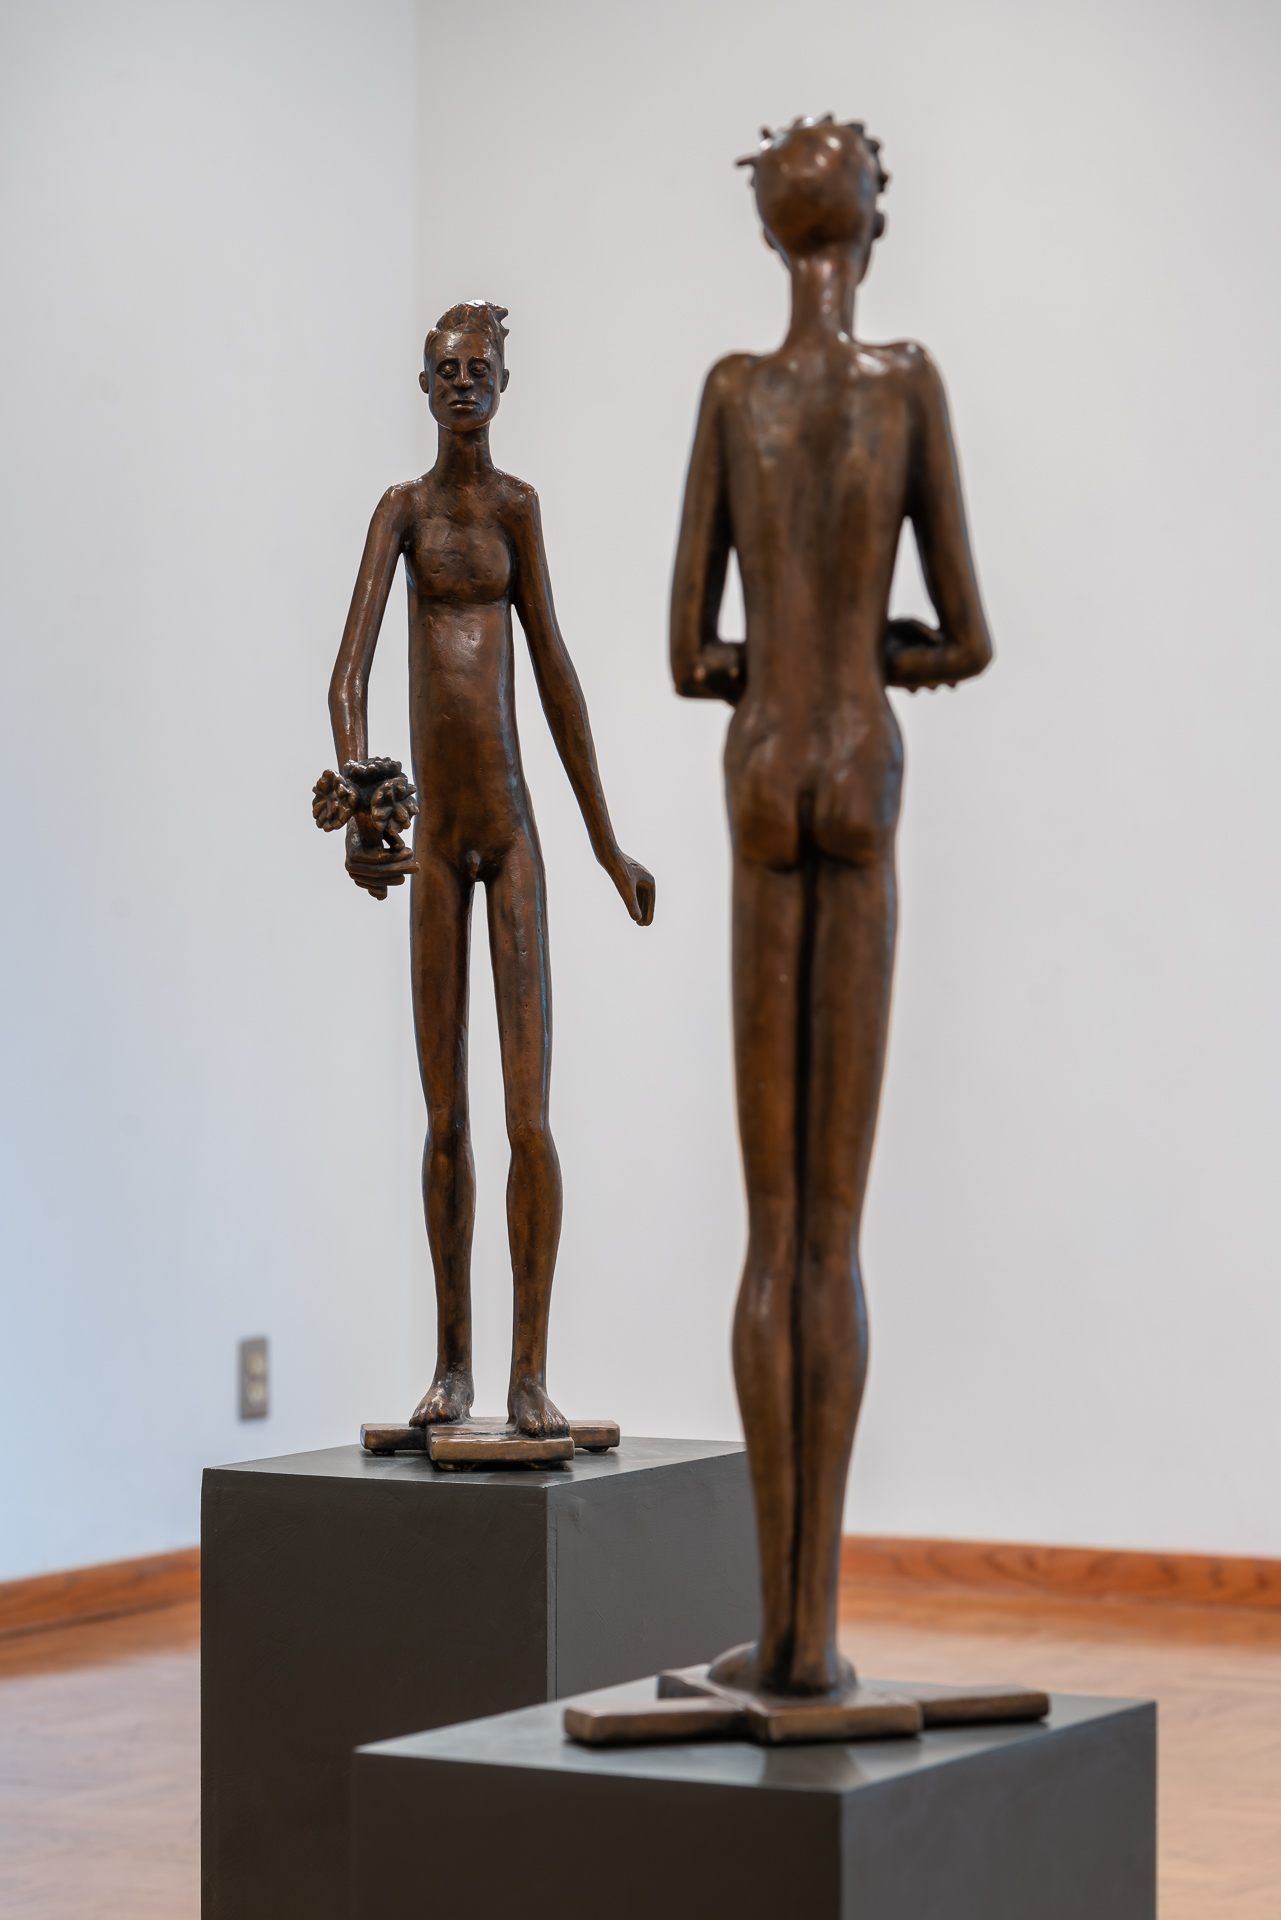 Image: Two of Keck's sculptures stand facing each other. A male figure holding flowers faces the viewer in the background while the backside of another sculpture is visible in the foreground. Image courtesy of the artist herself